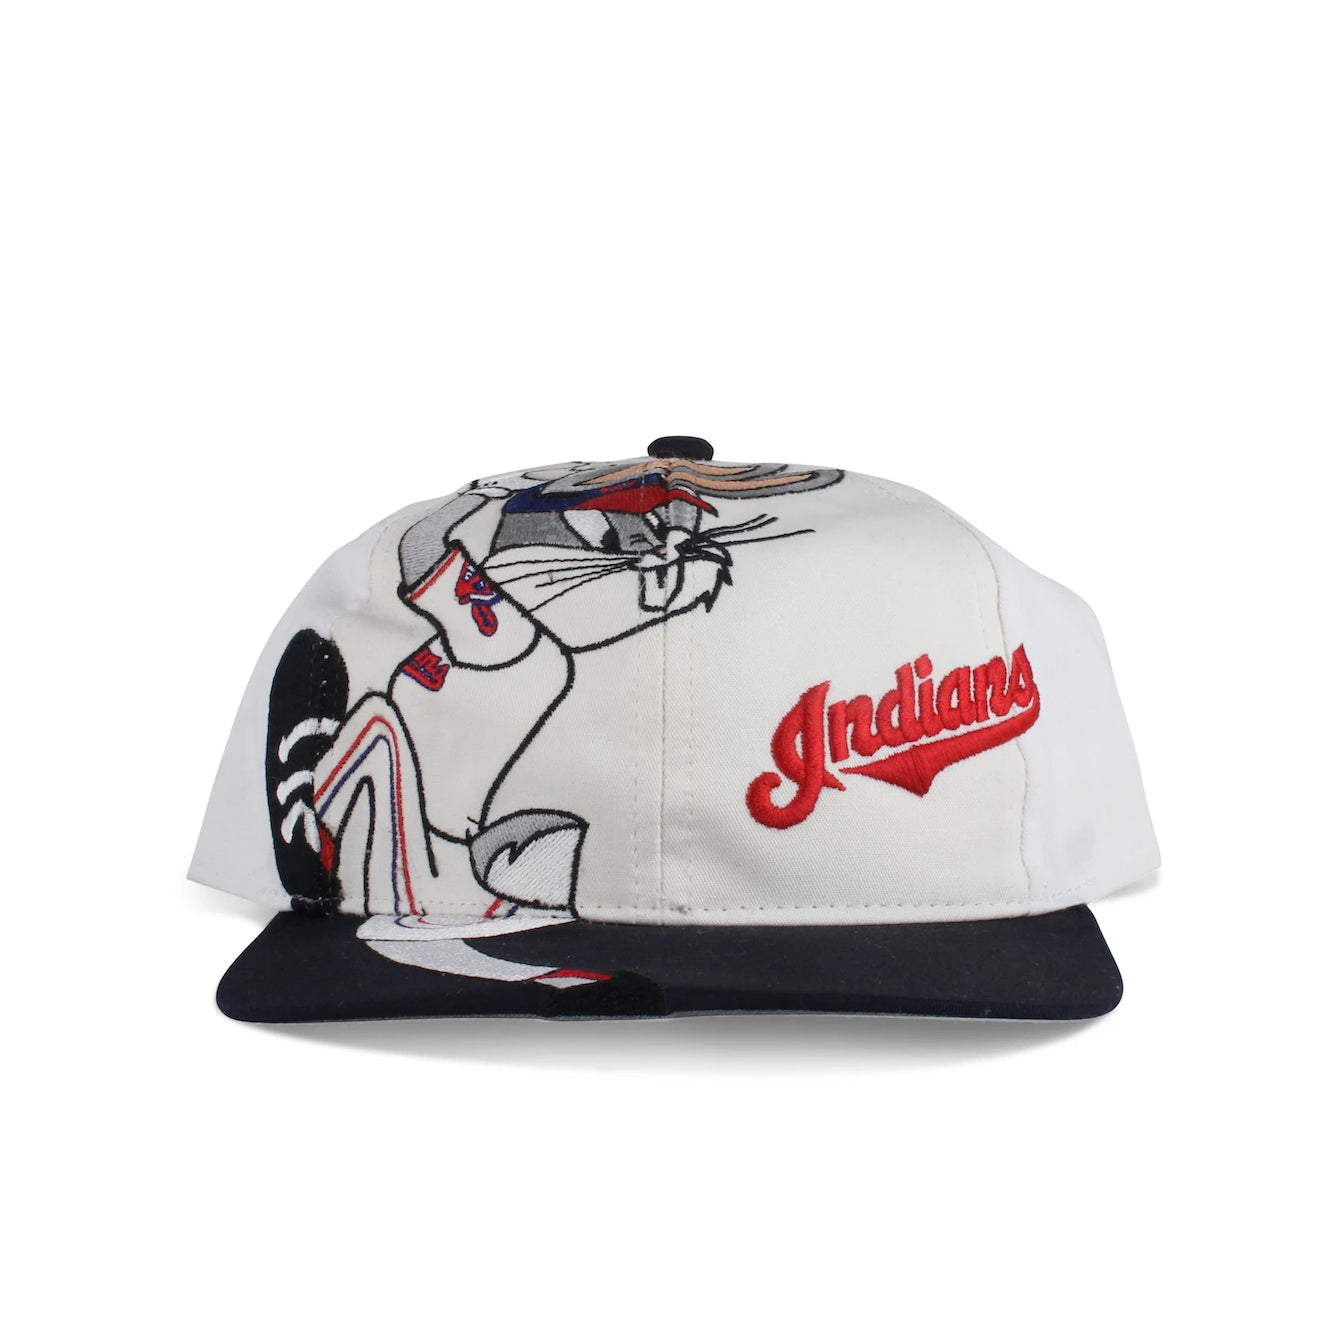 Vintage 1996 Looney Tunes Bugs Bunny Cleveland Indians Youth Snapback Hat